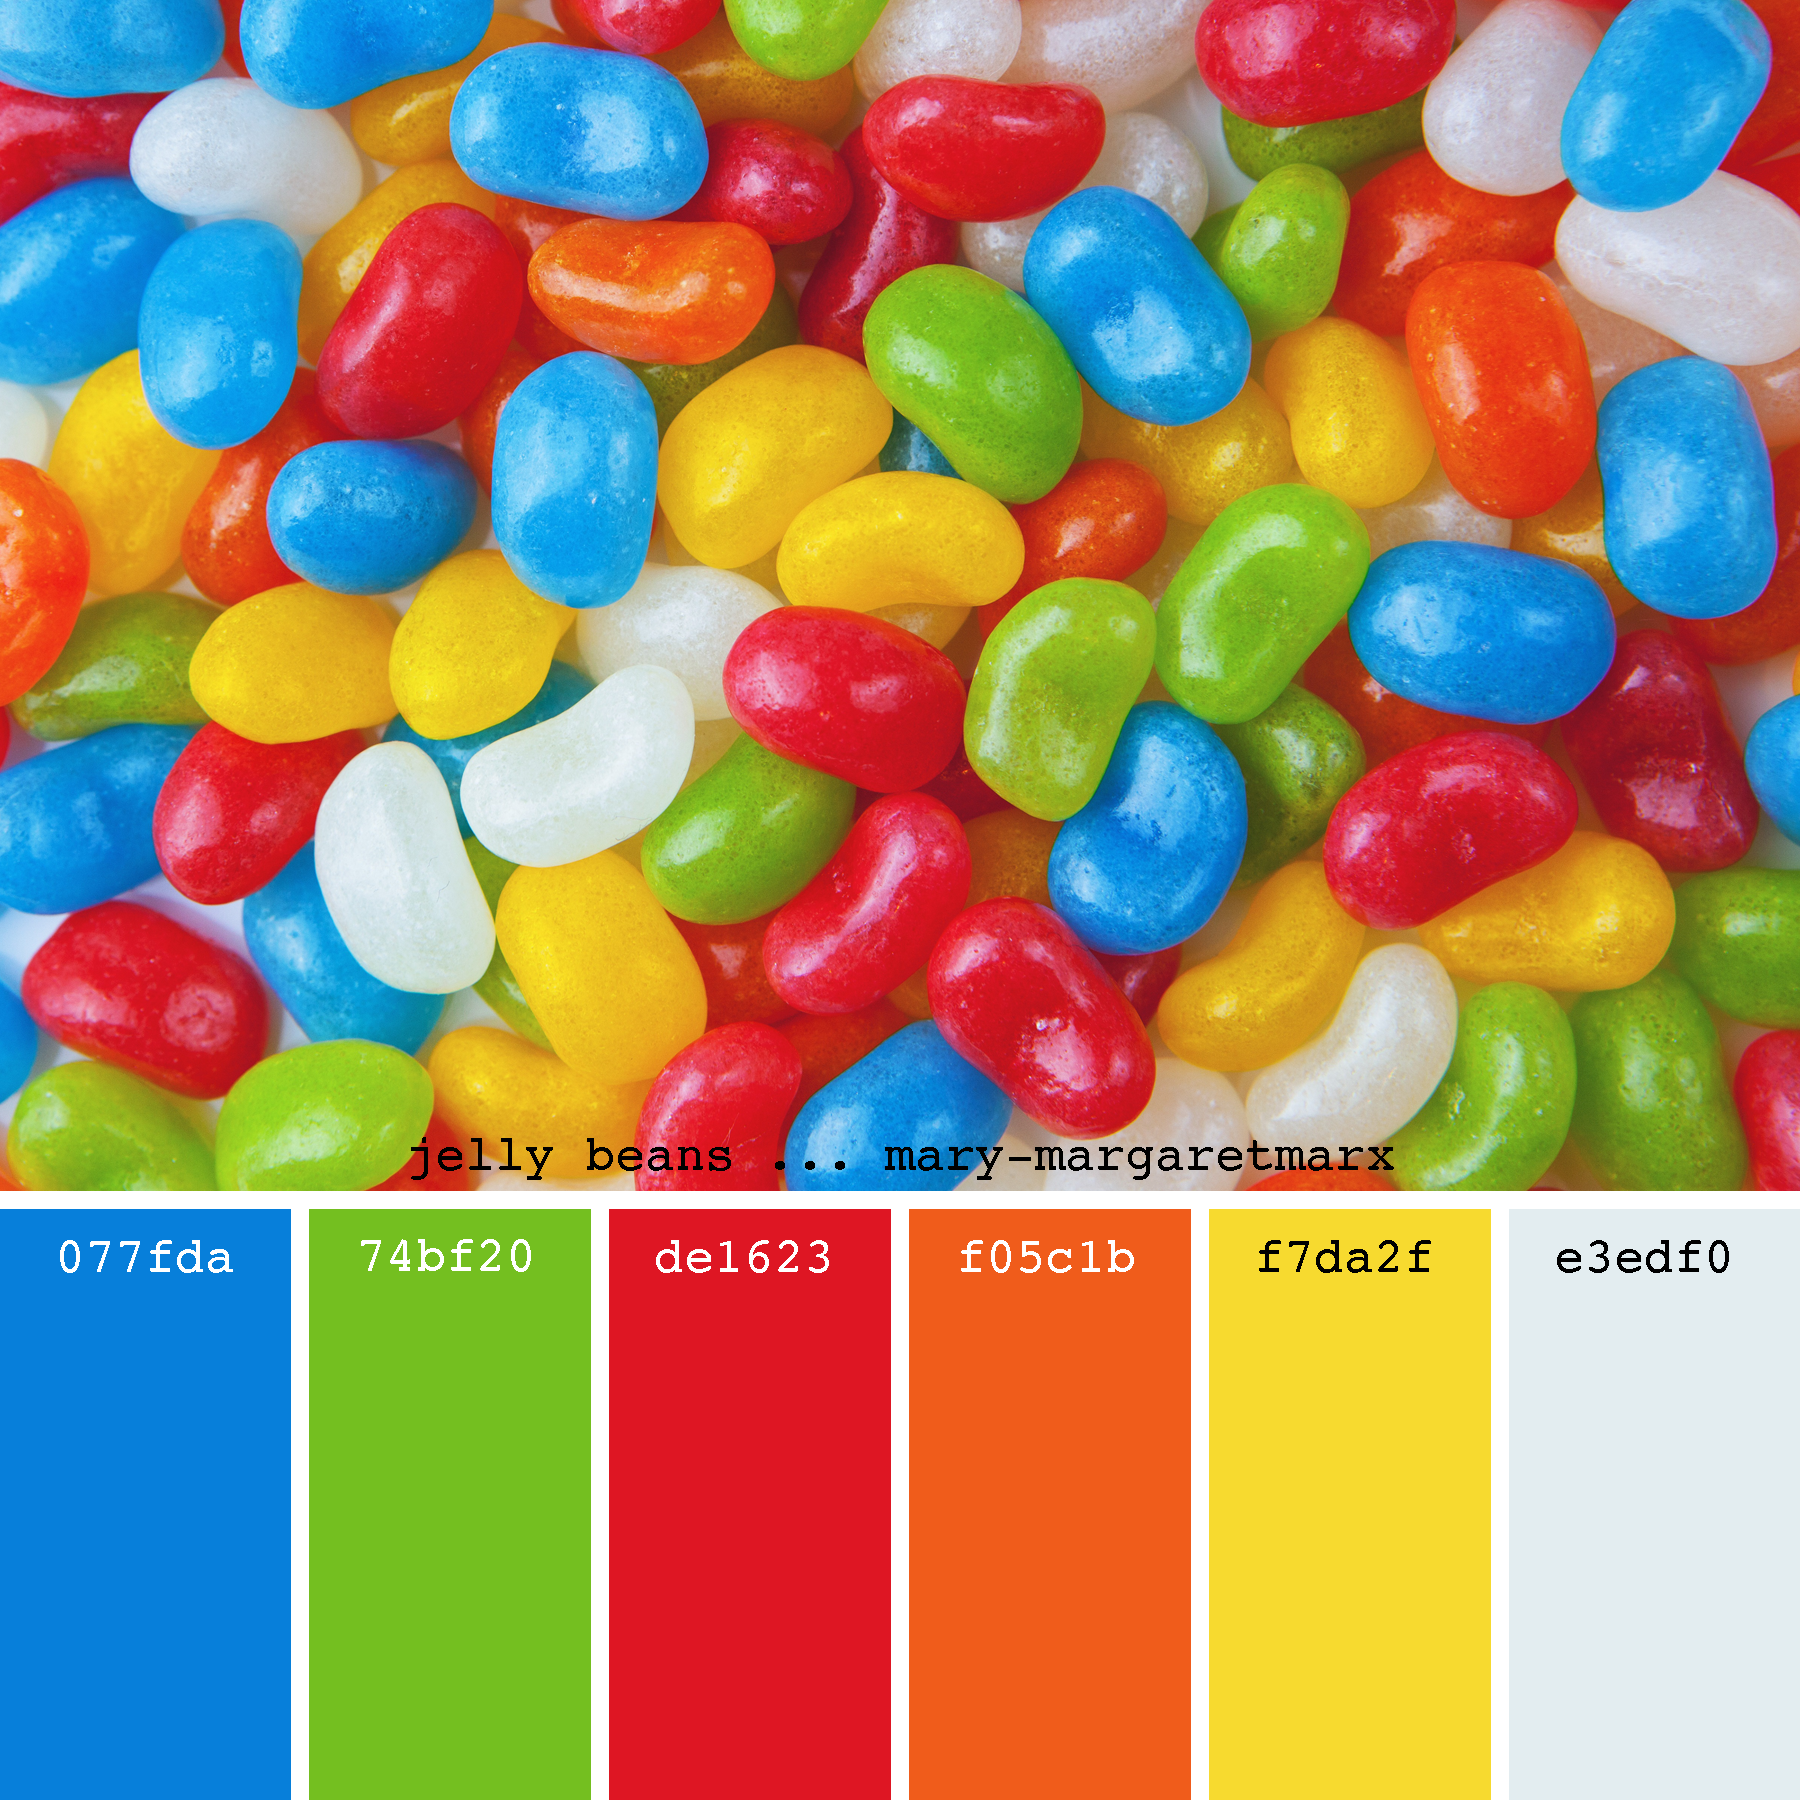 Jelly Beans Mary Margaretmarx Color Colors Colour Colours Colorpalette Colorpalettes Color Palette Bright Paint Color Palettes Color Palette Design